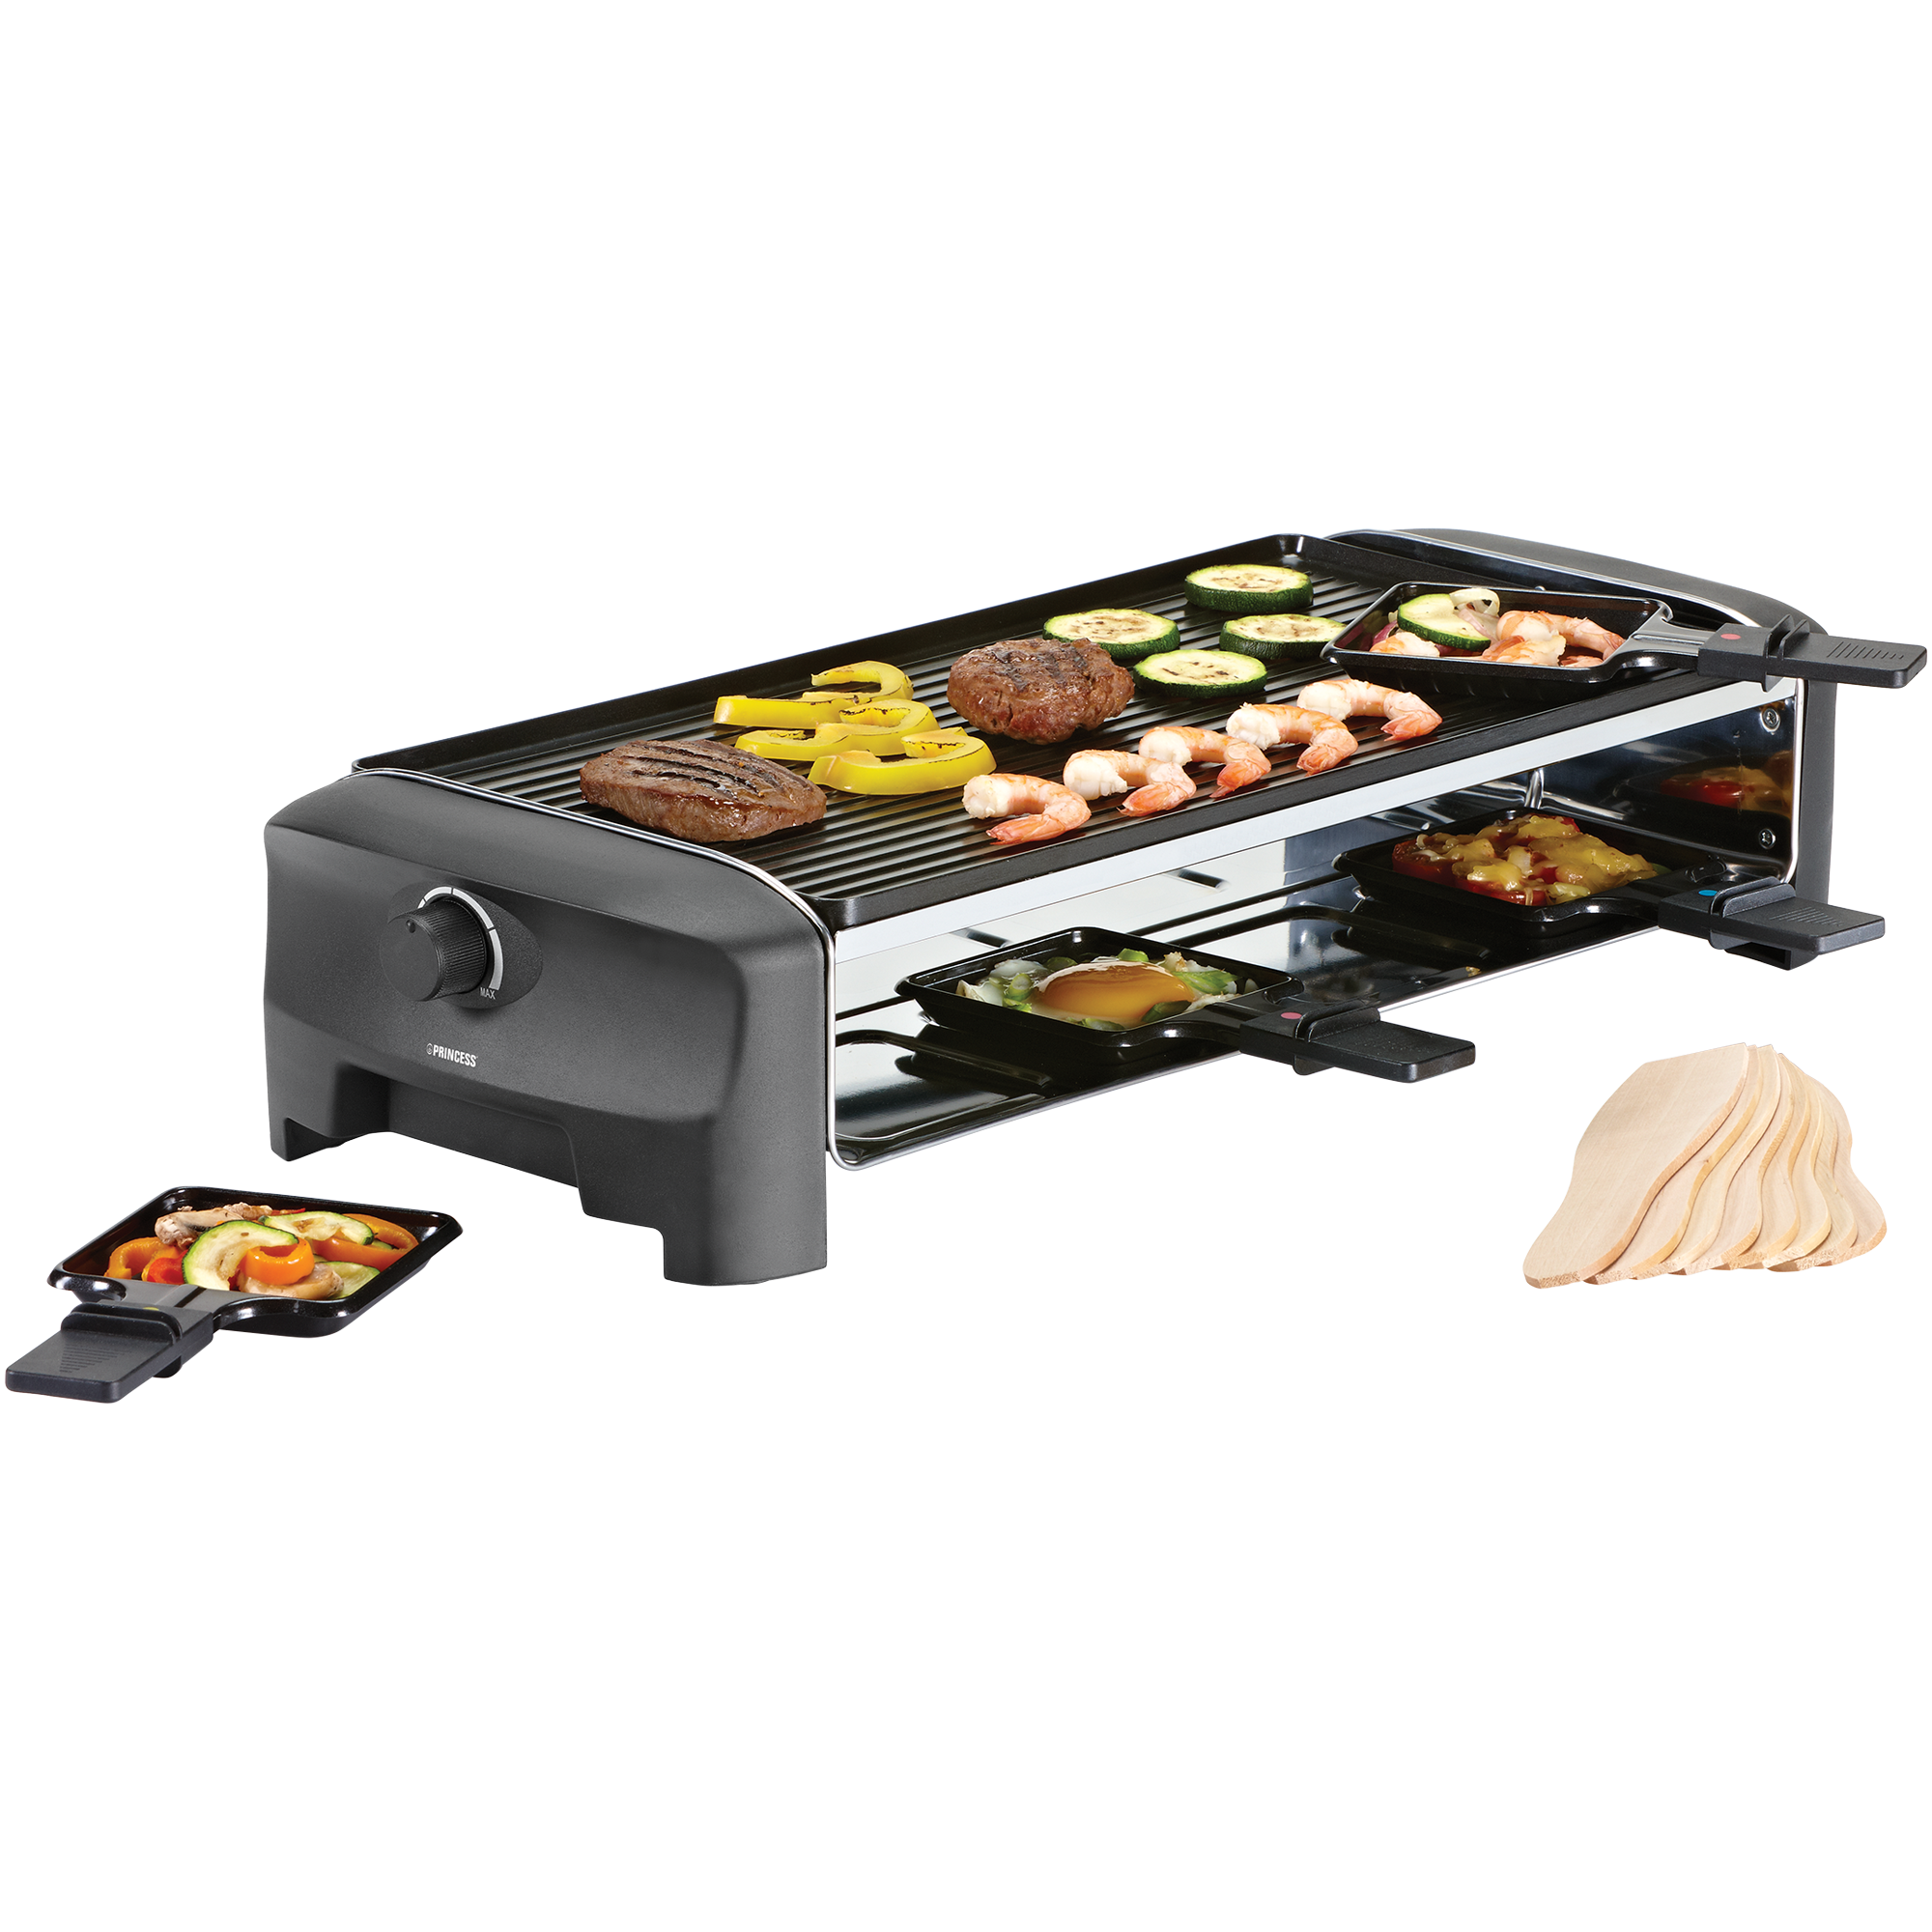 Princess 162840 Teppanyaki Party – Parrilla, Raclette y Plancha ...